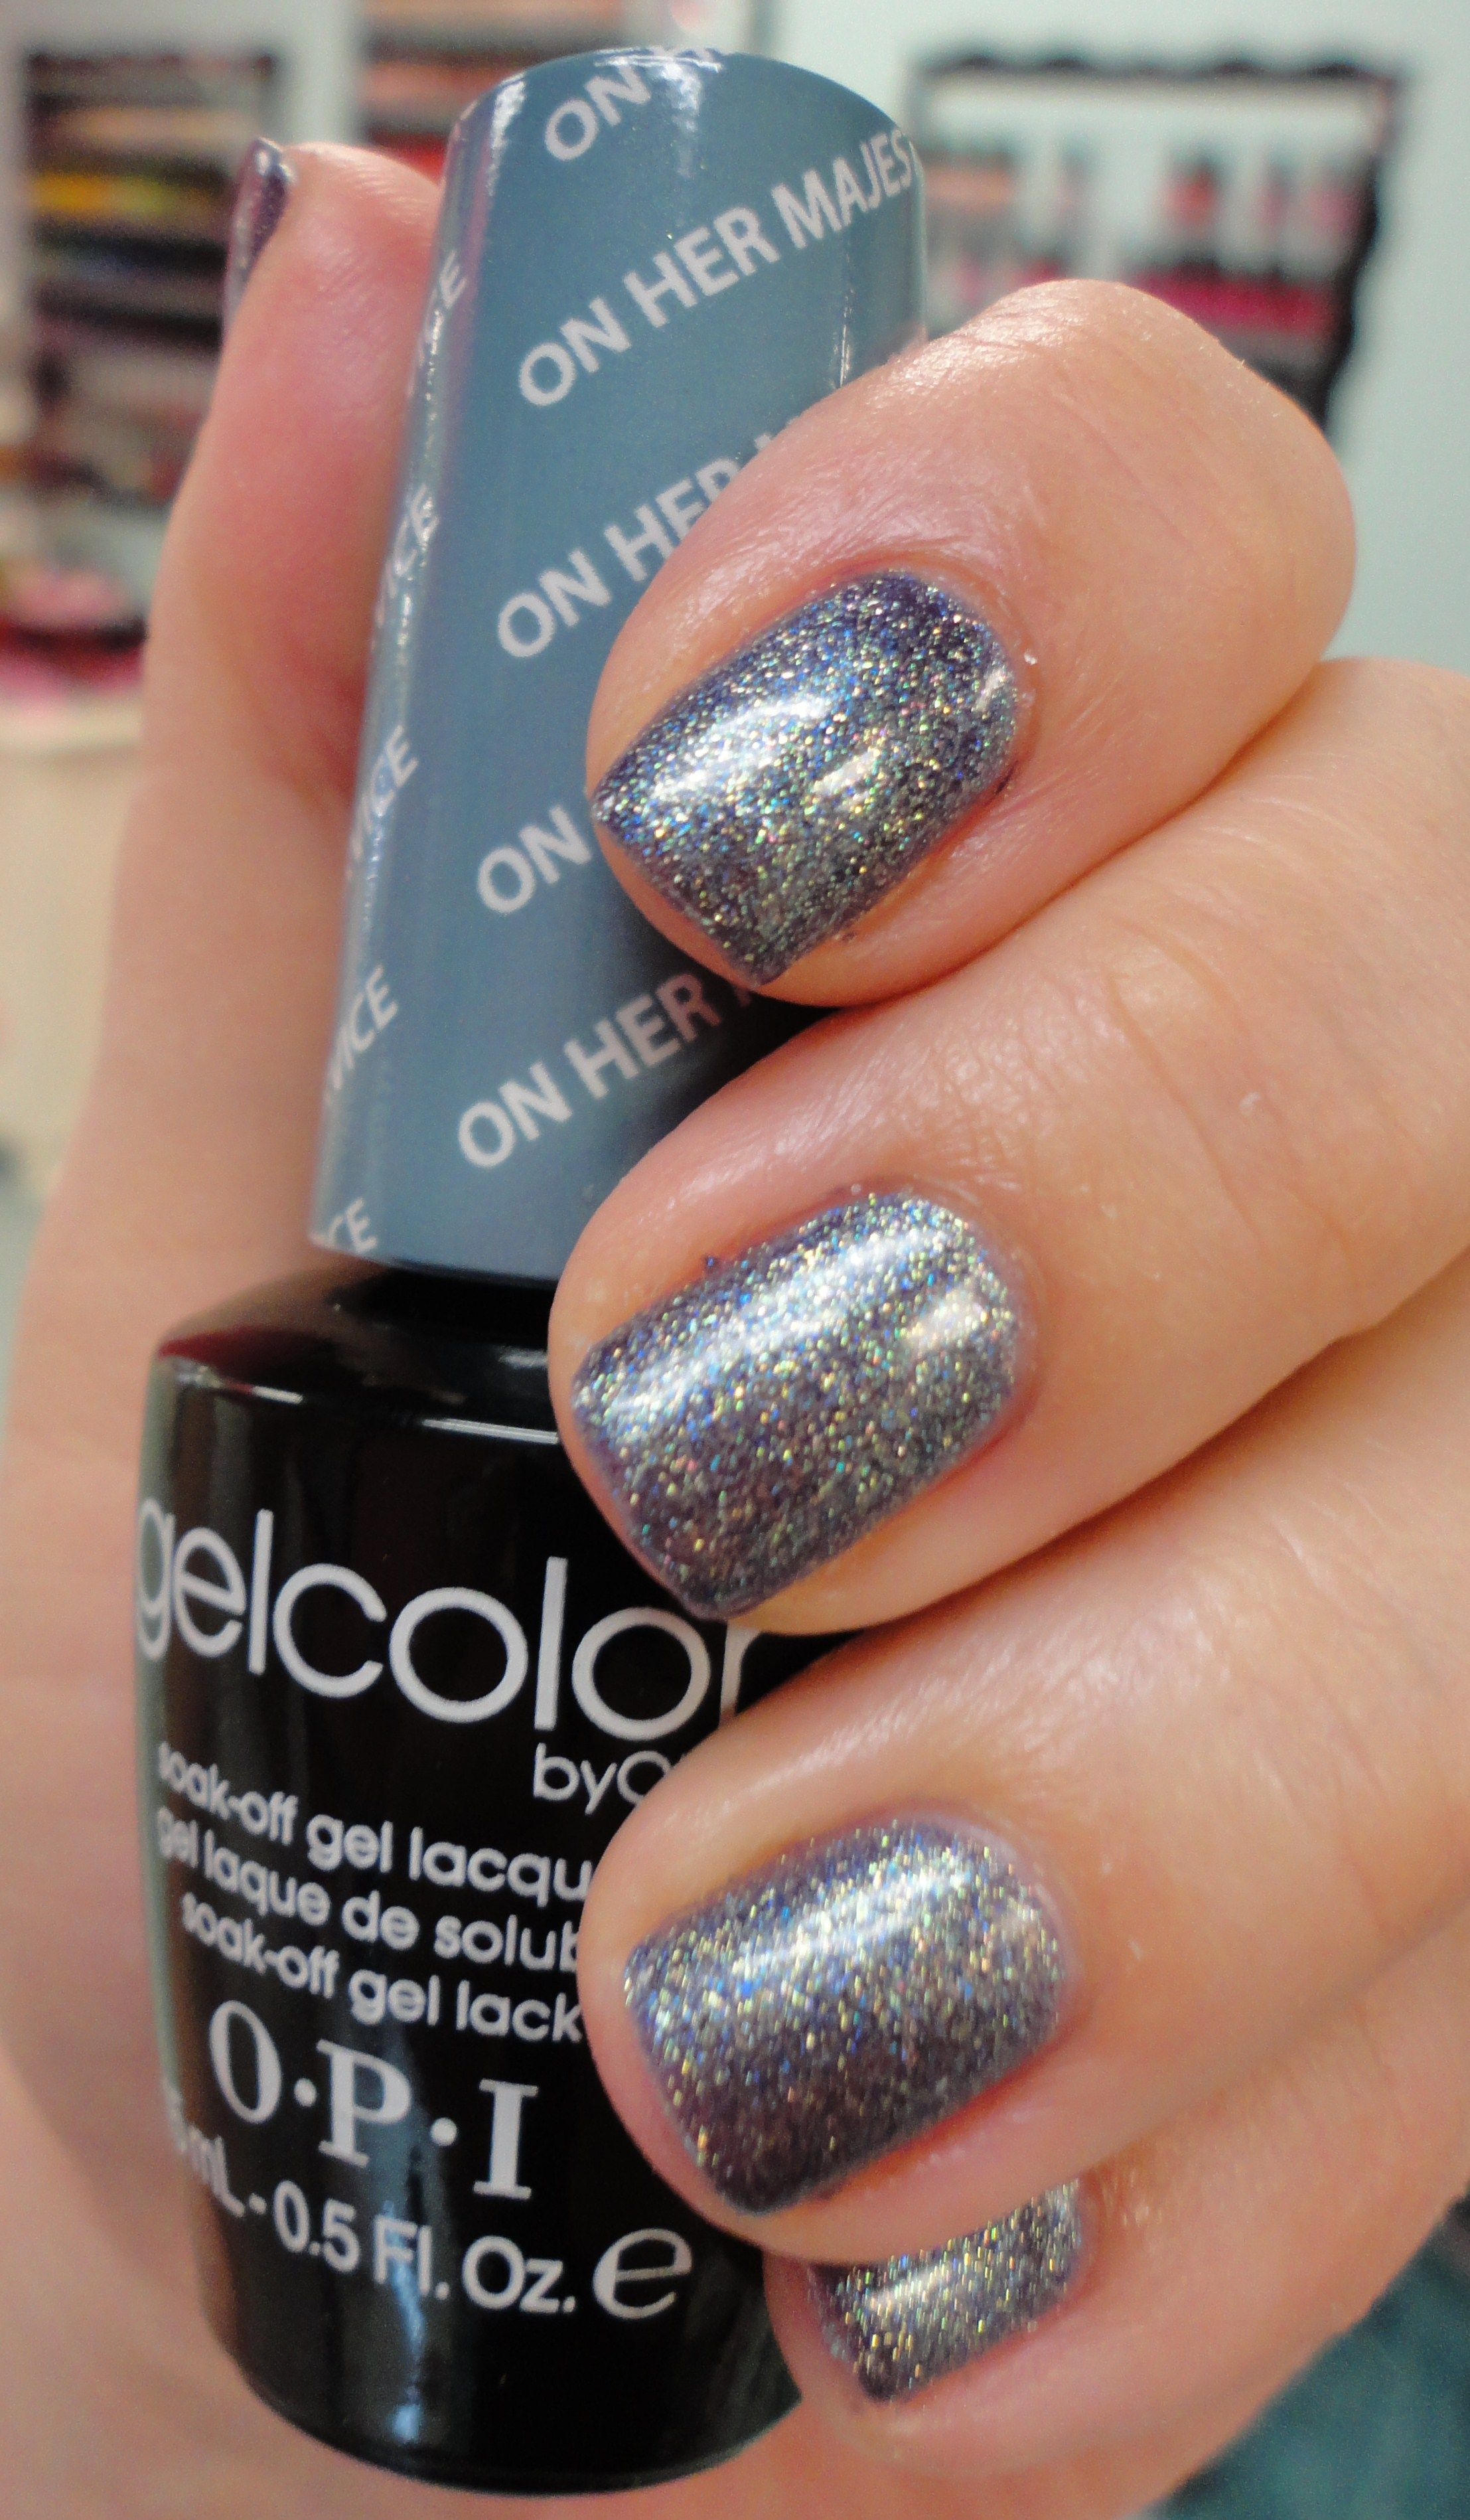 this beautiful silver glitter polish is one of opi's new gel